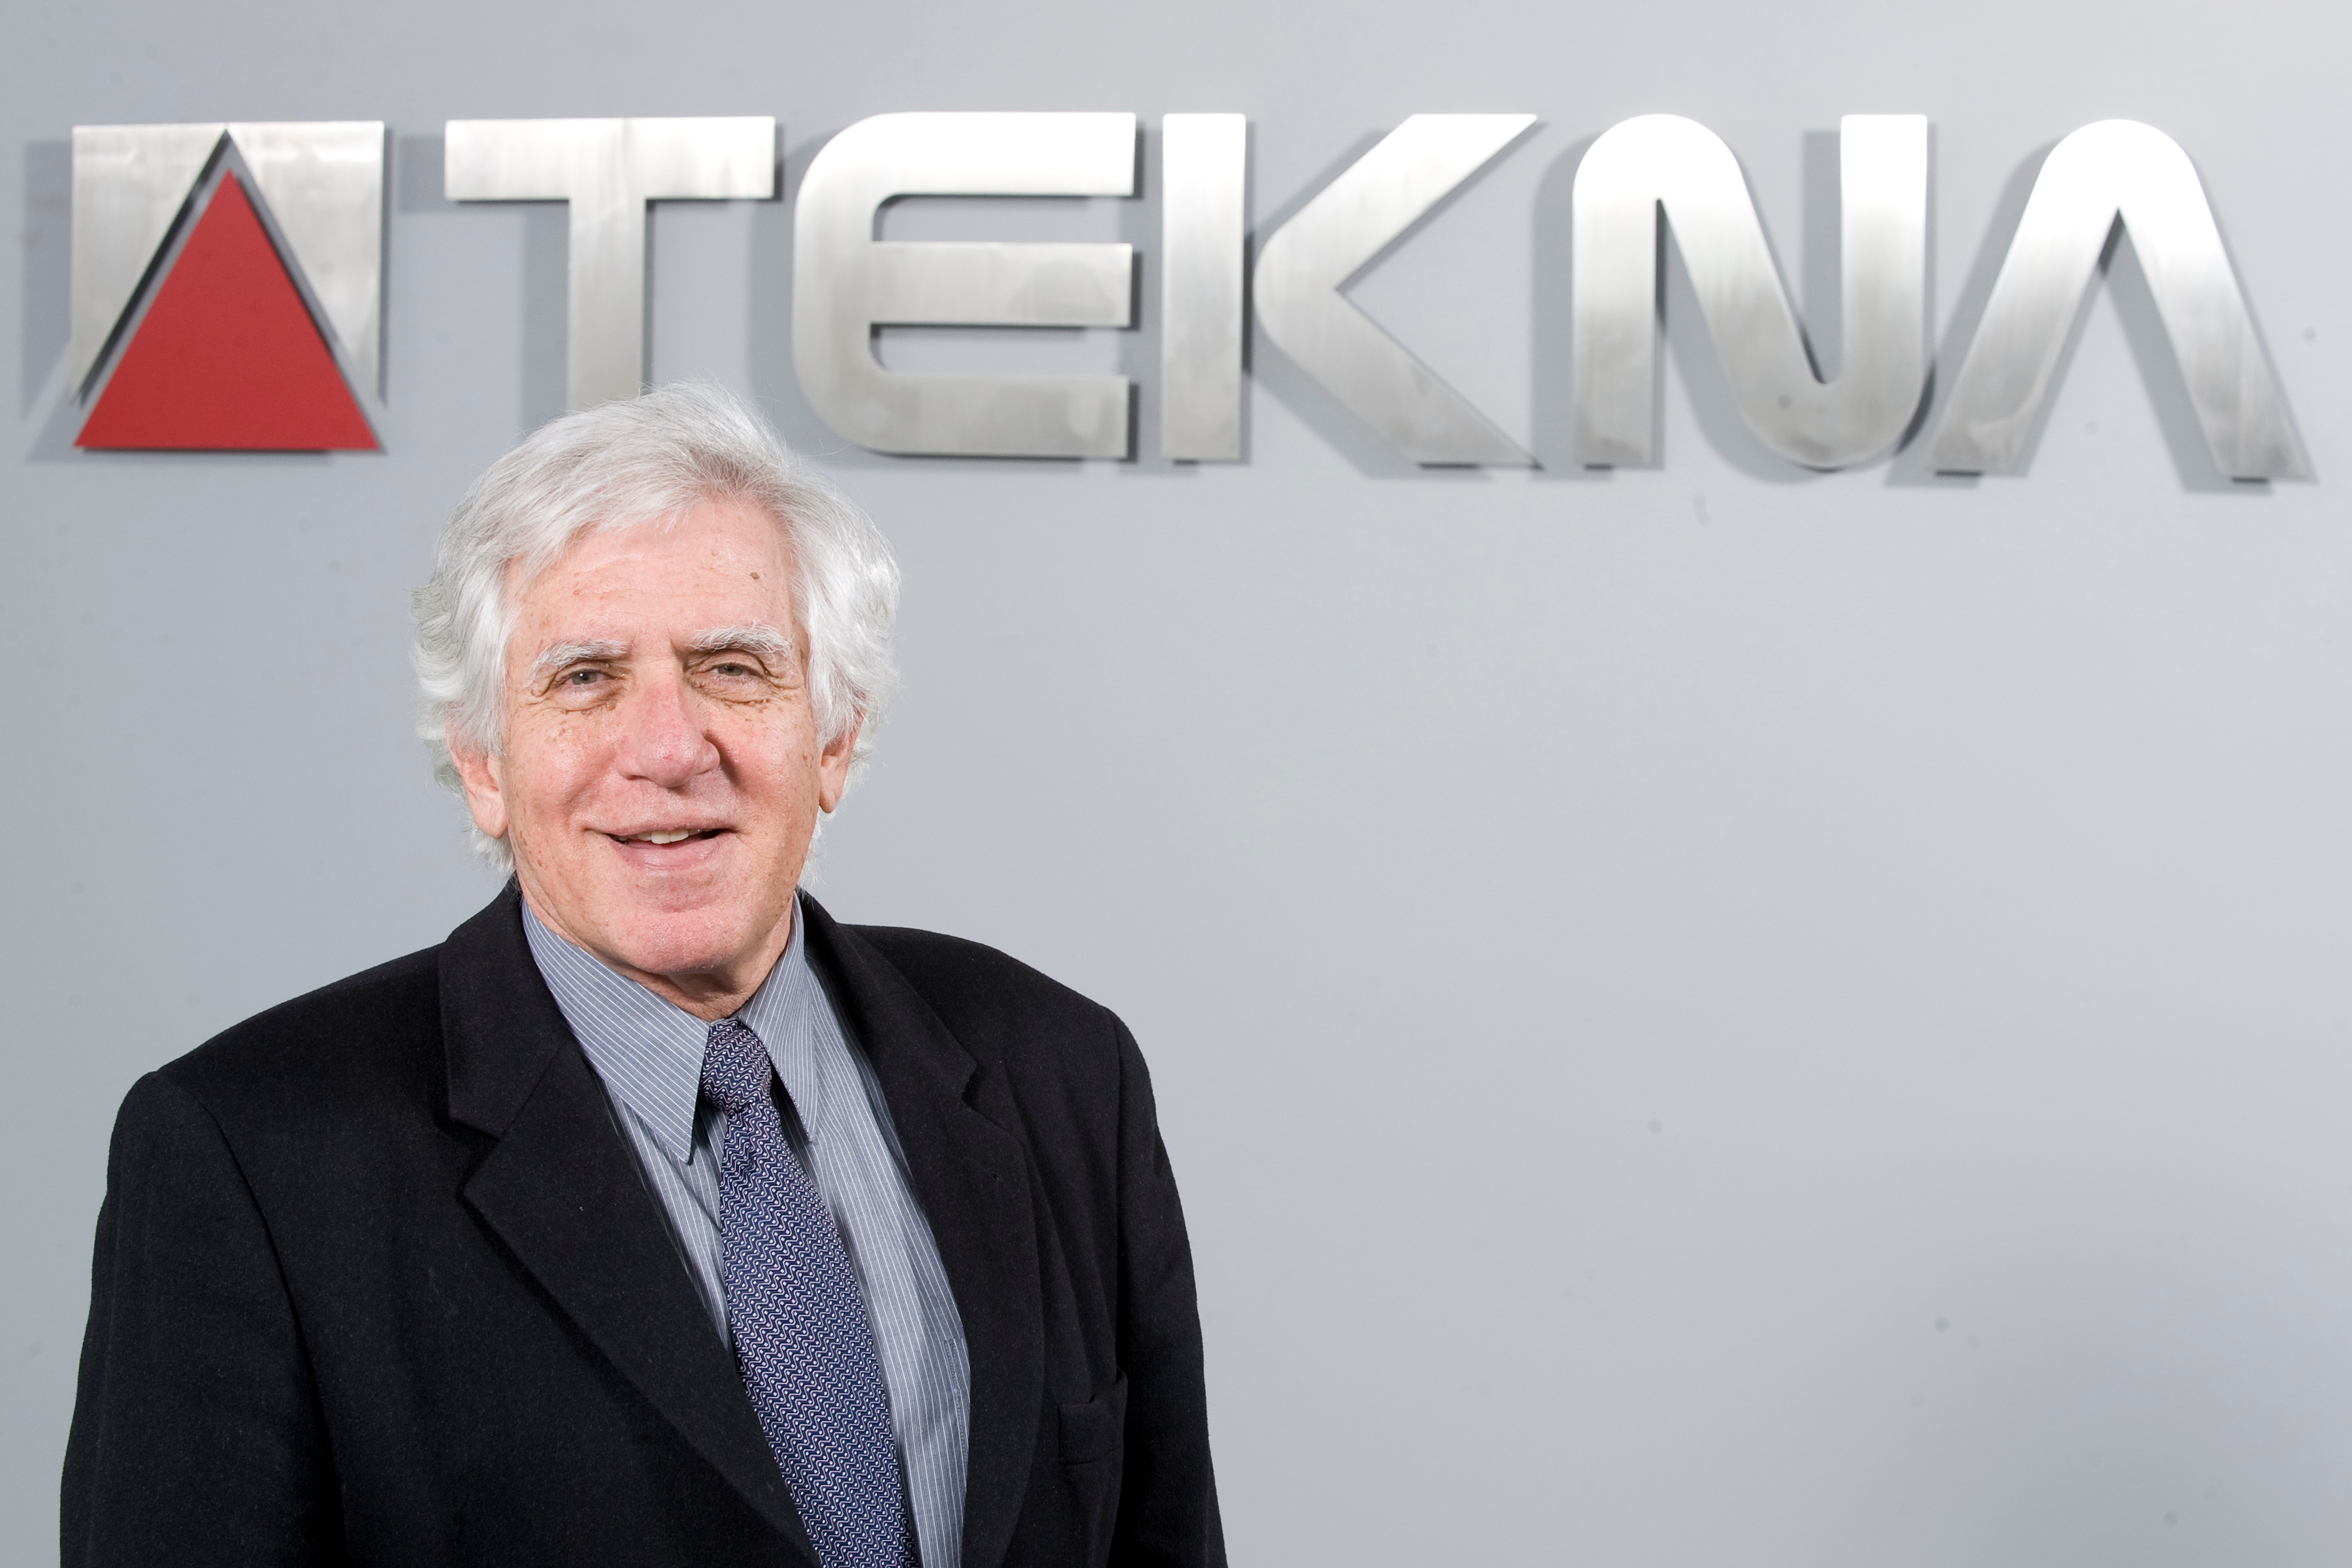 The plasma chemistry award 2015 to Prof Maher Boulos, Tekna's founder